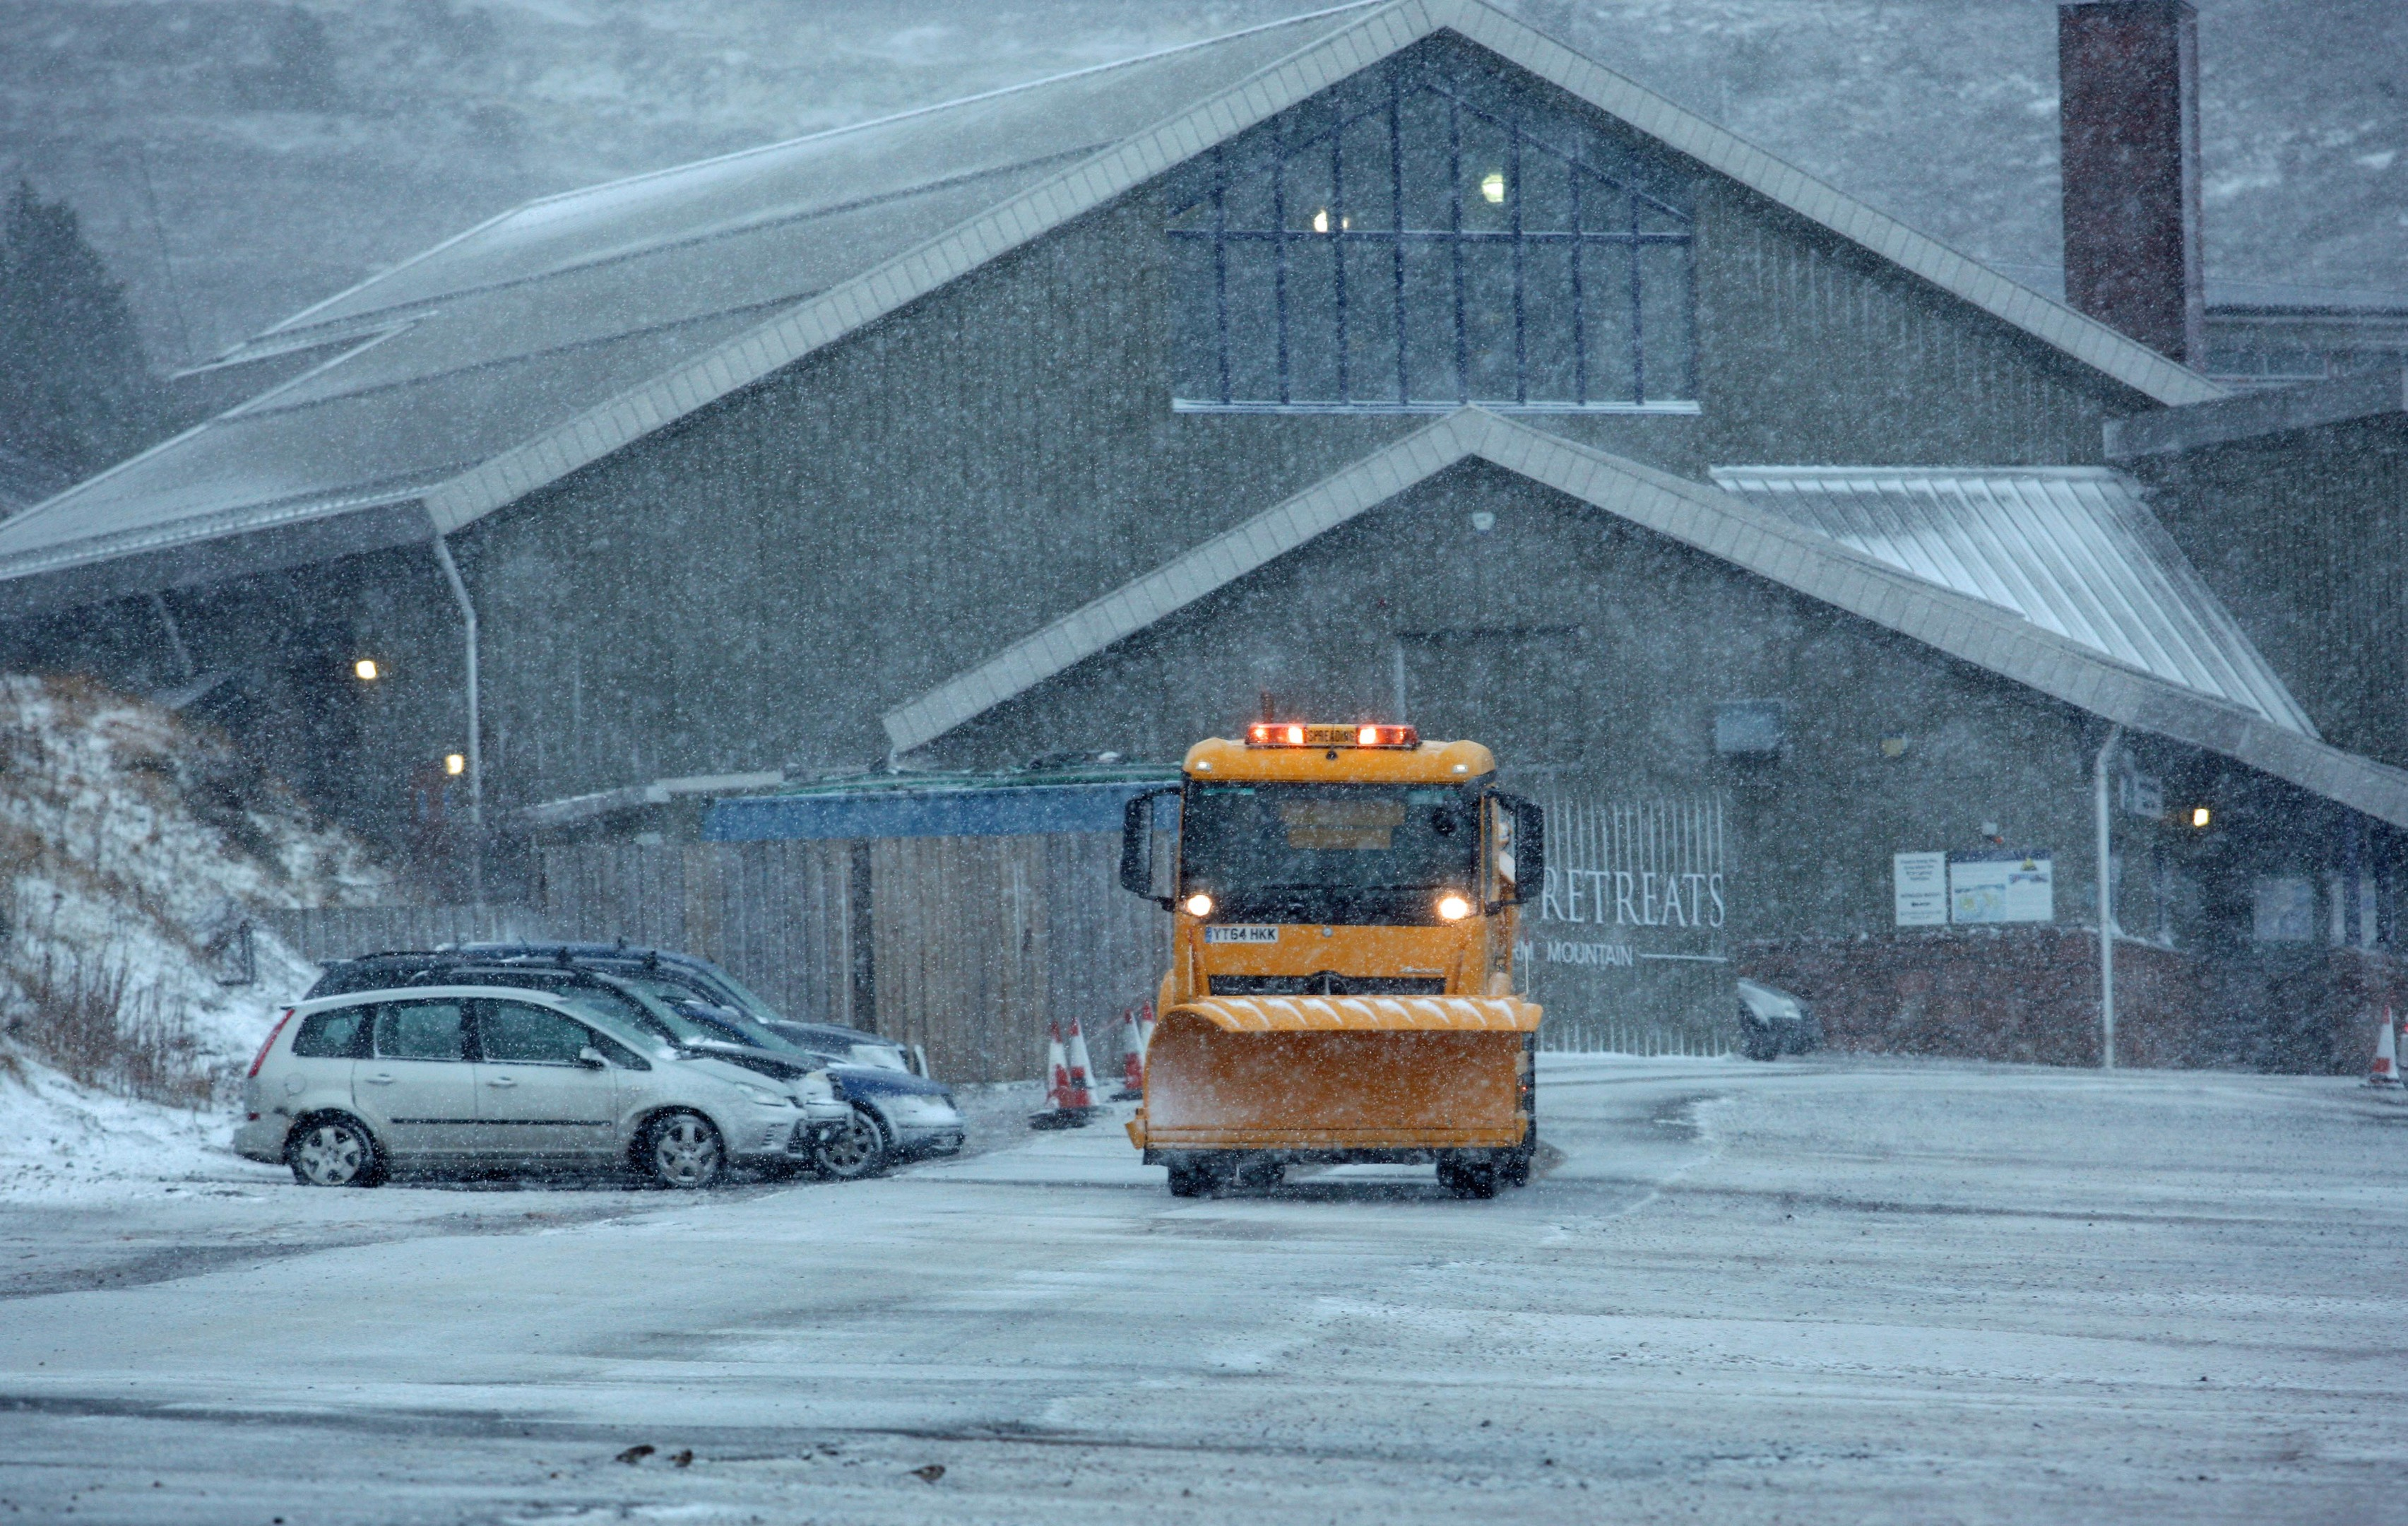 Storm Caroline: A snowplough in a blizzard in the Cairngorm National park as winds hit 120mph.